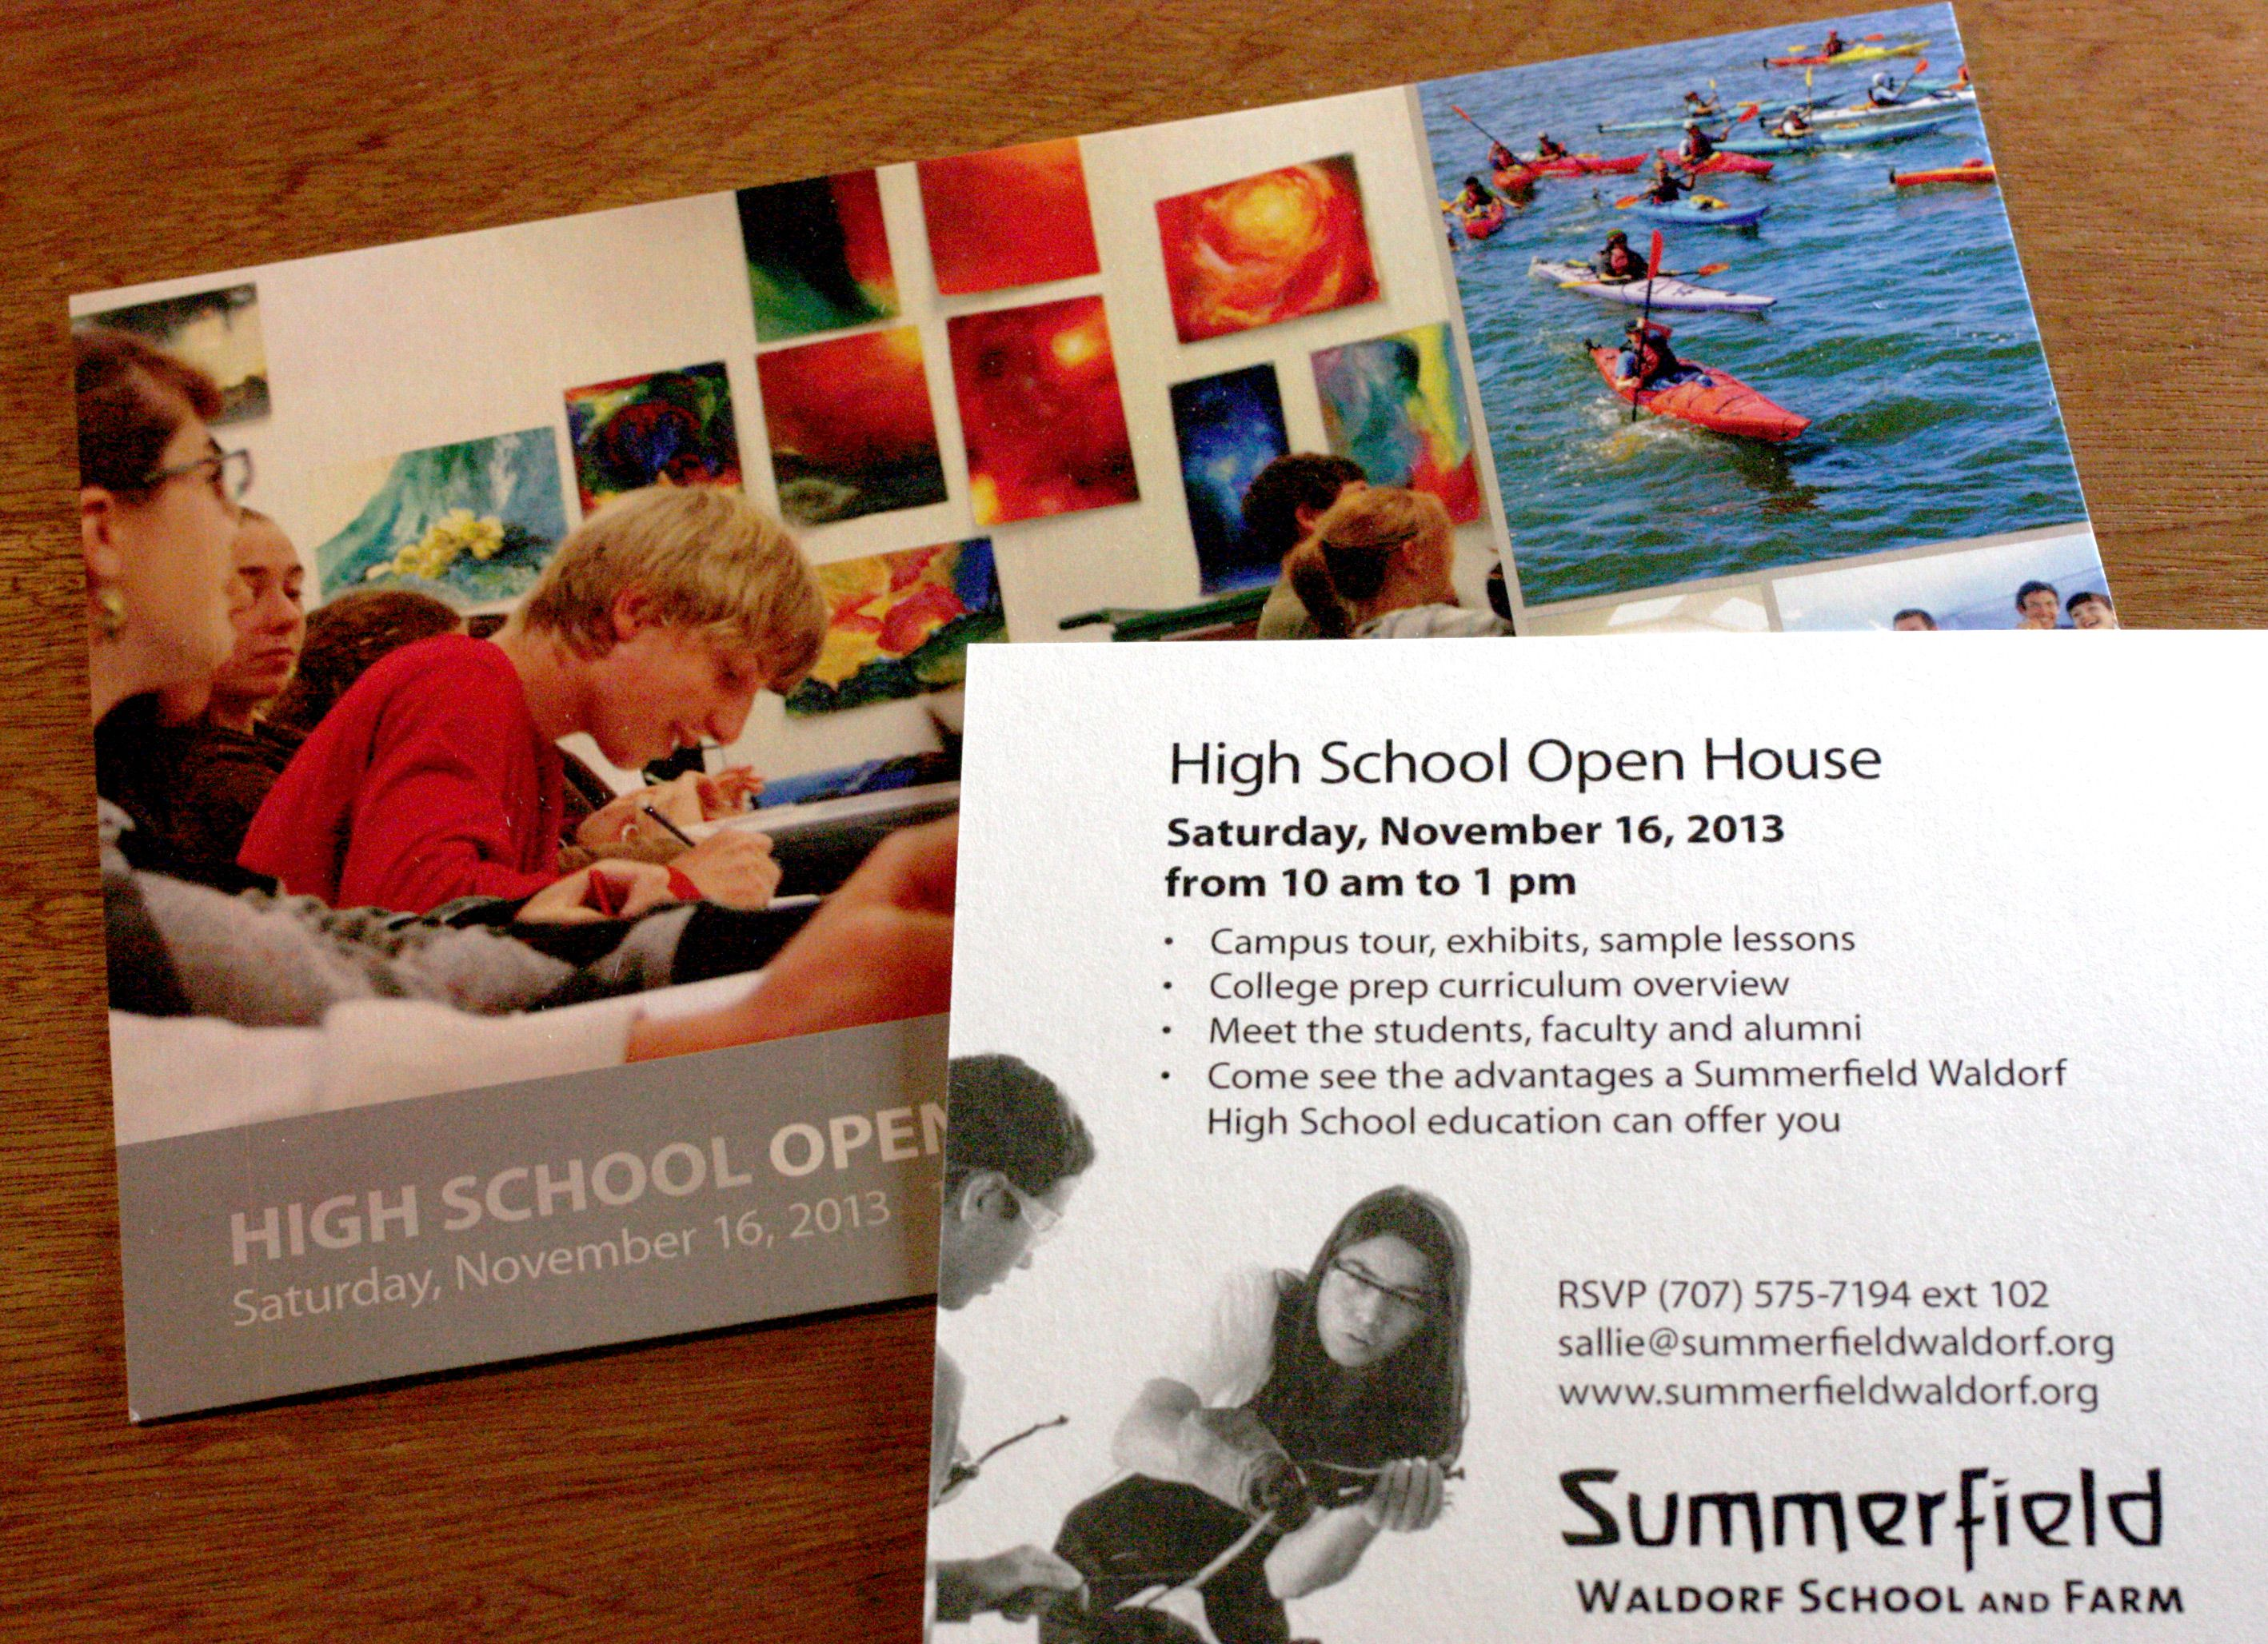 Summerfield Waldorf Open House Postcard Front And Back